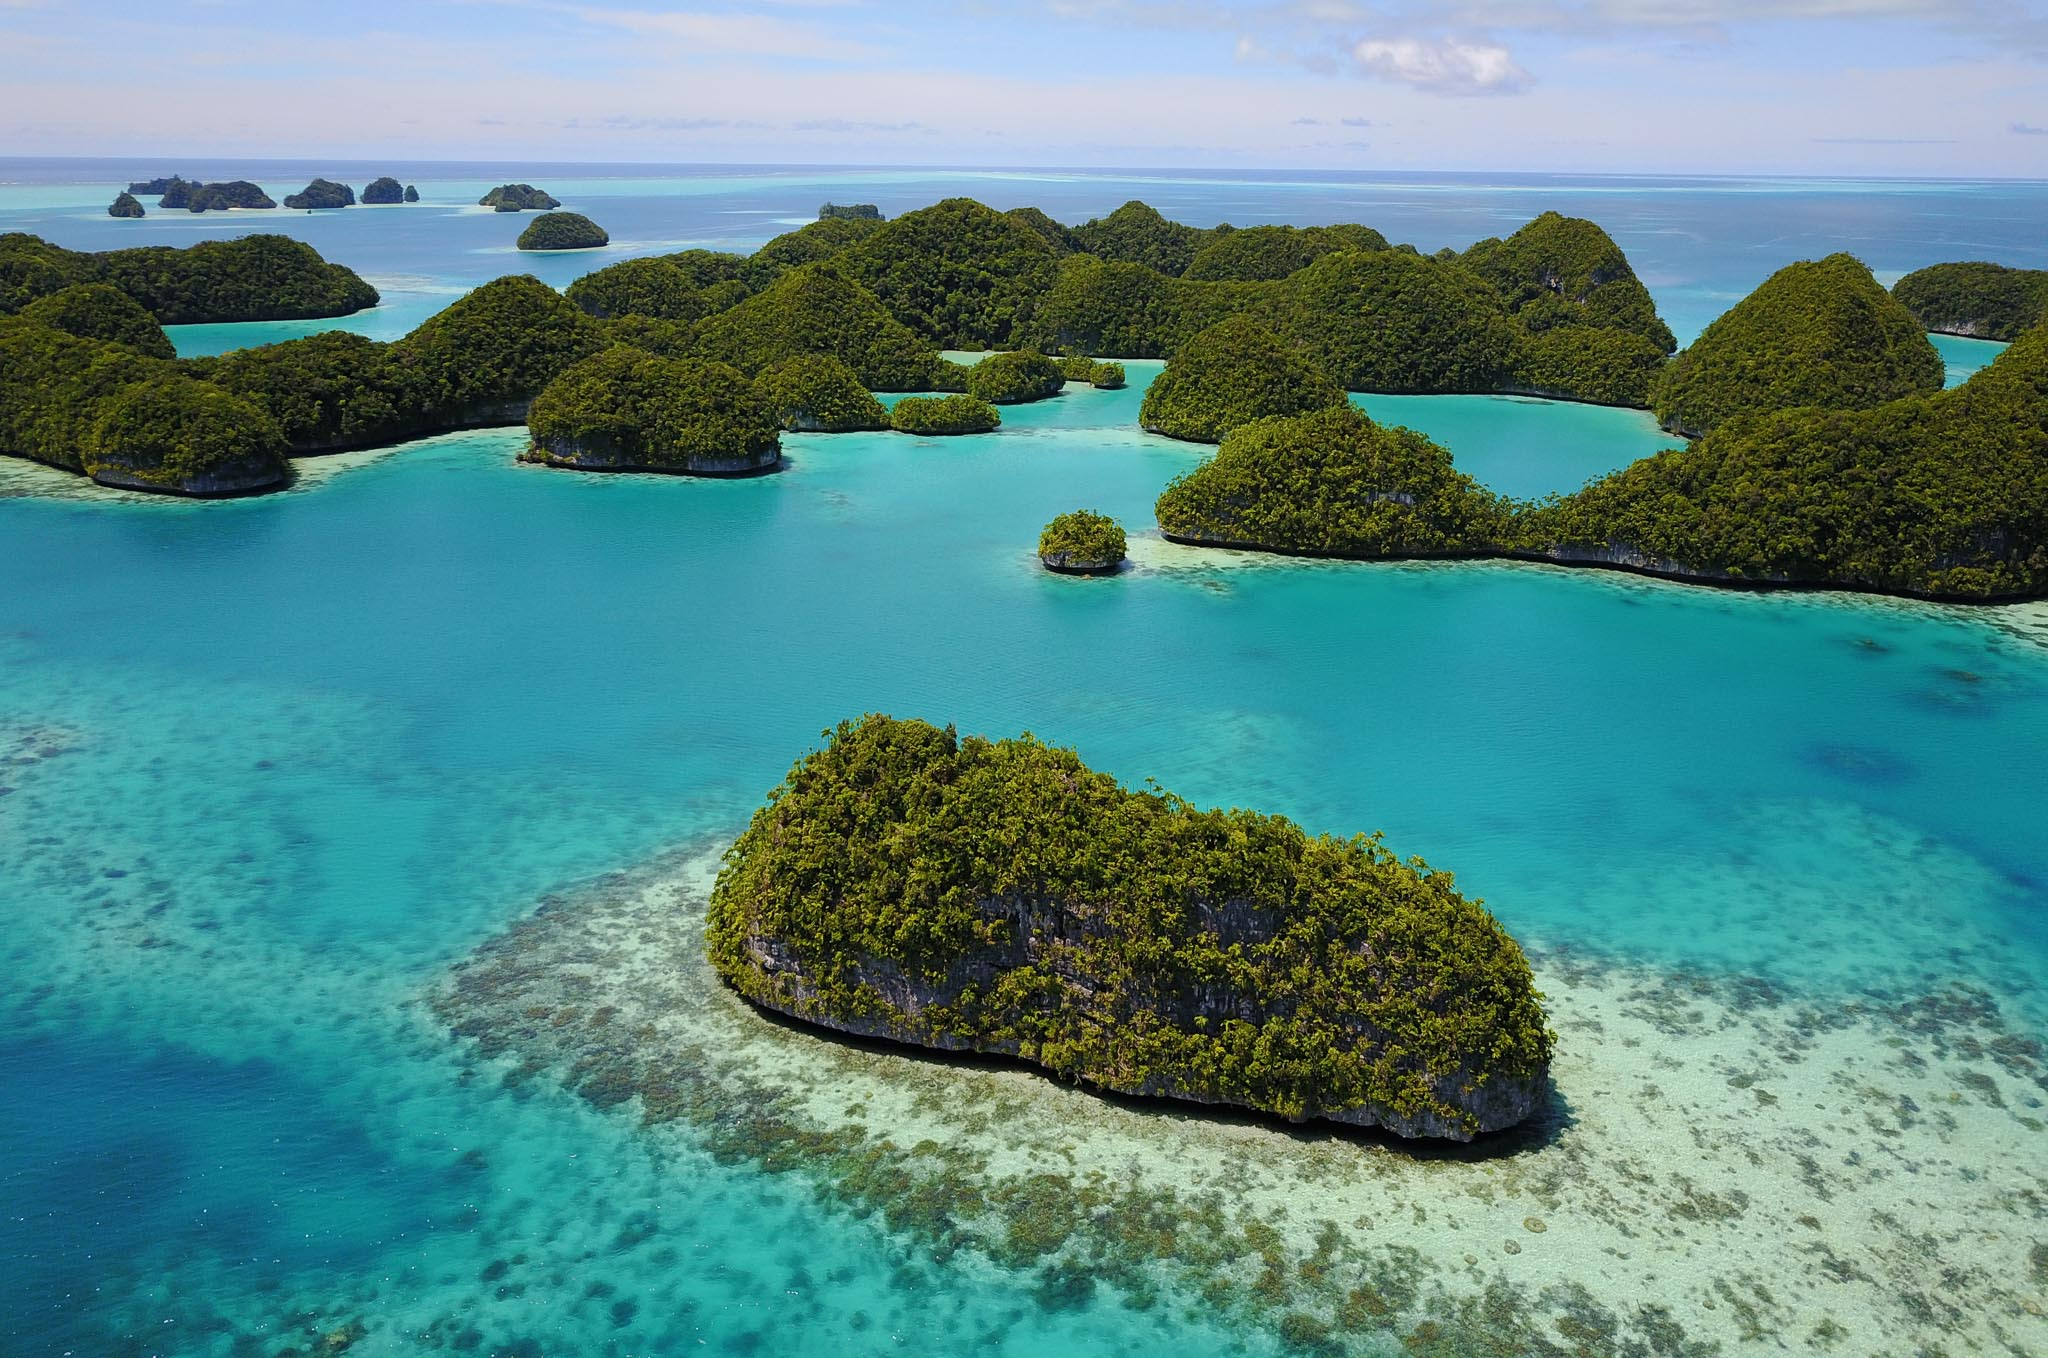 70 Islands Wildlife Preserve Palau